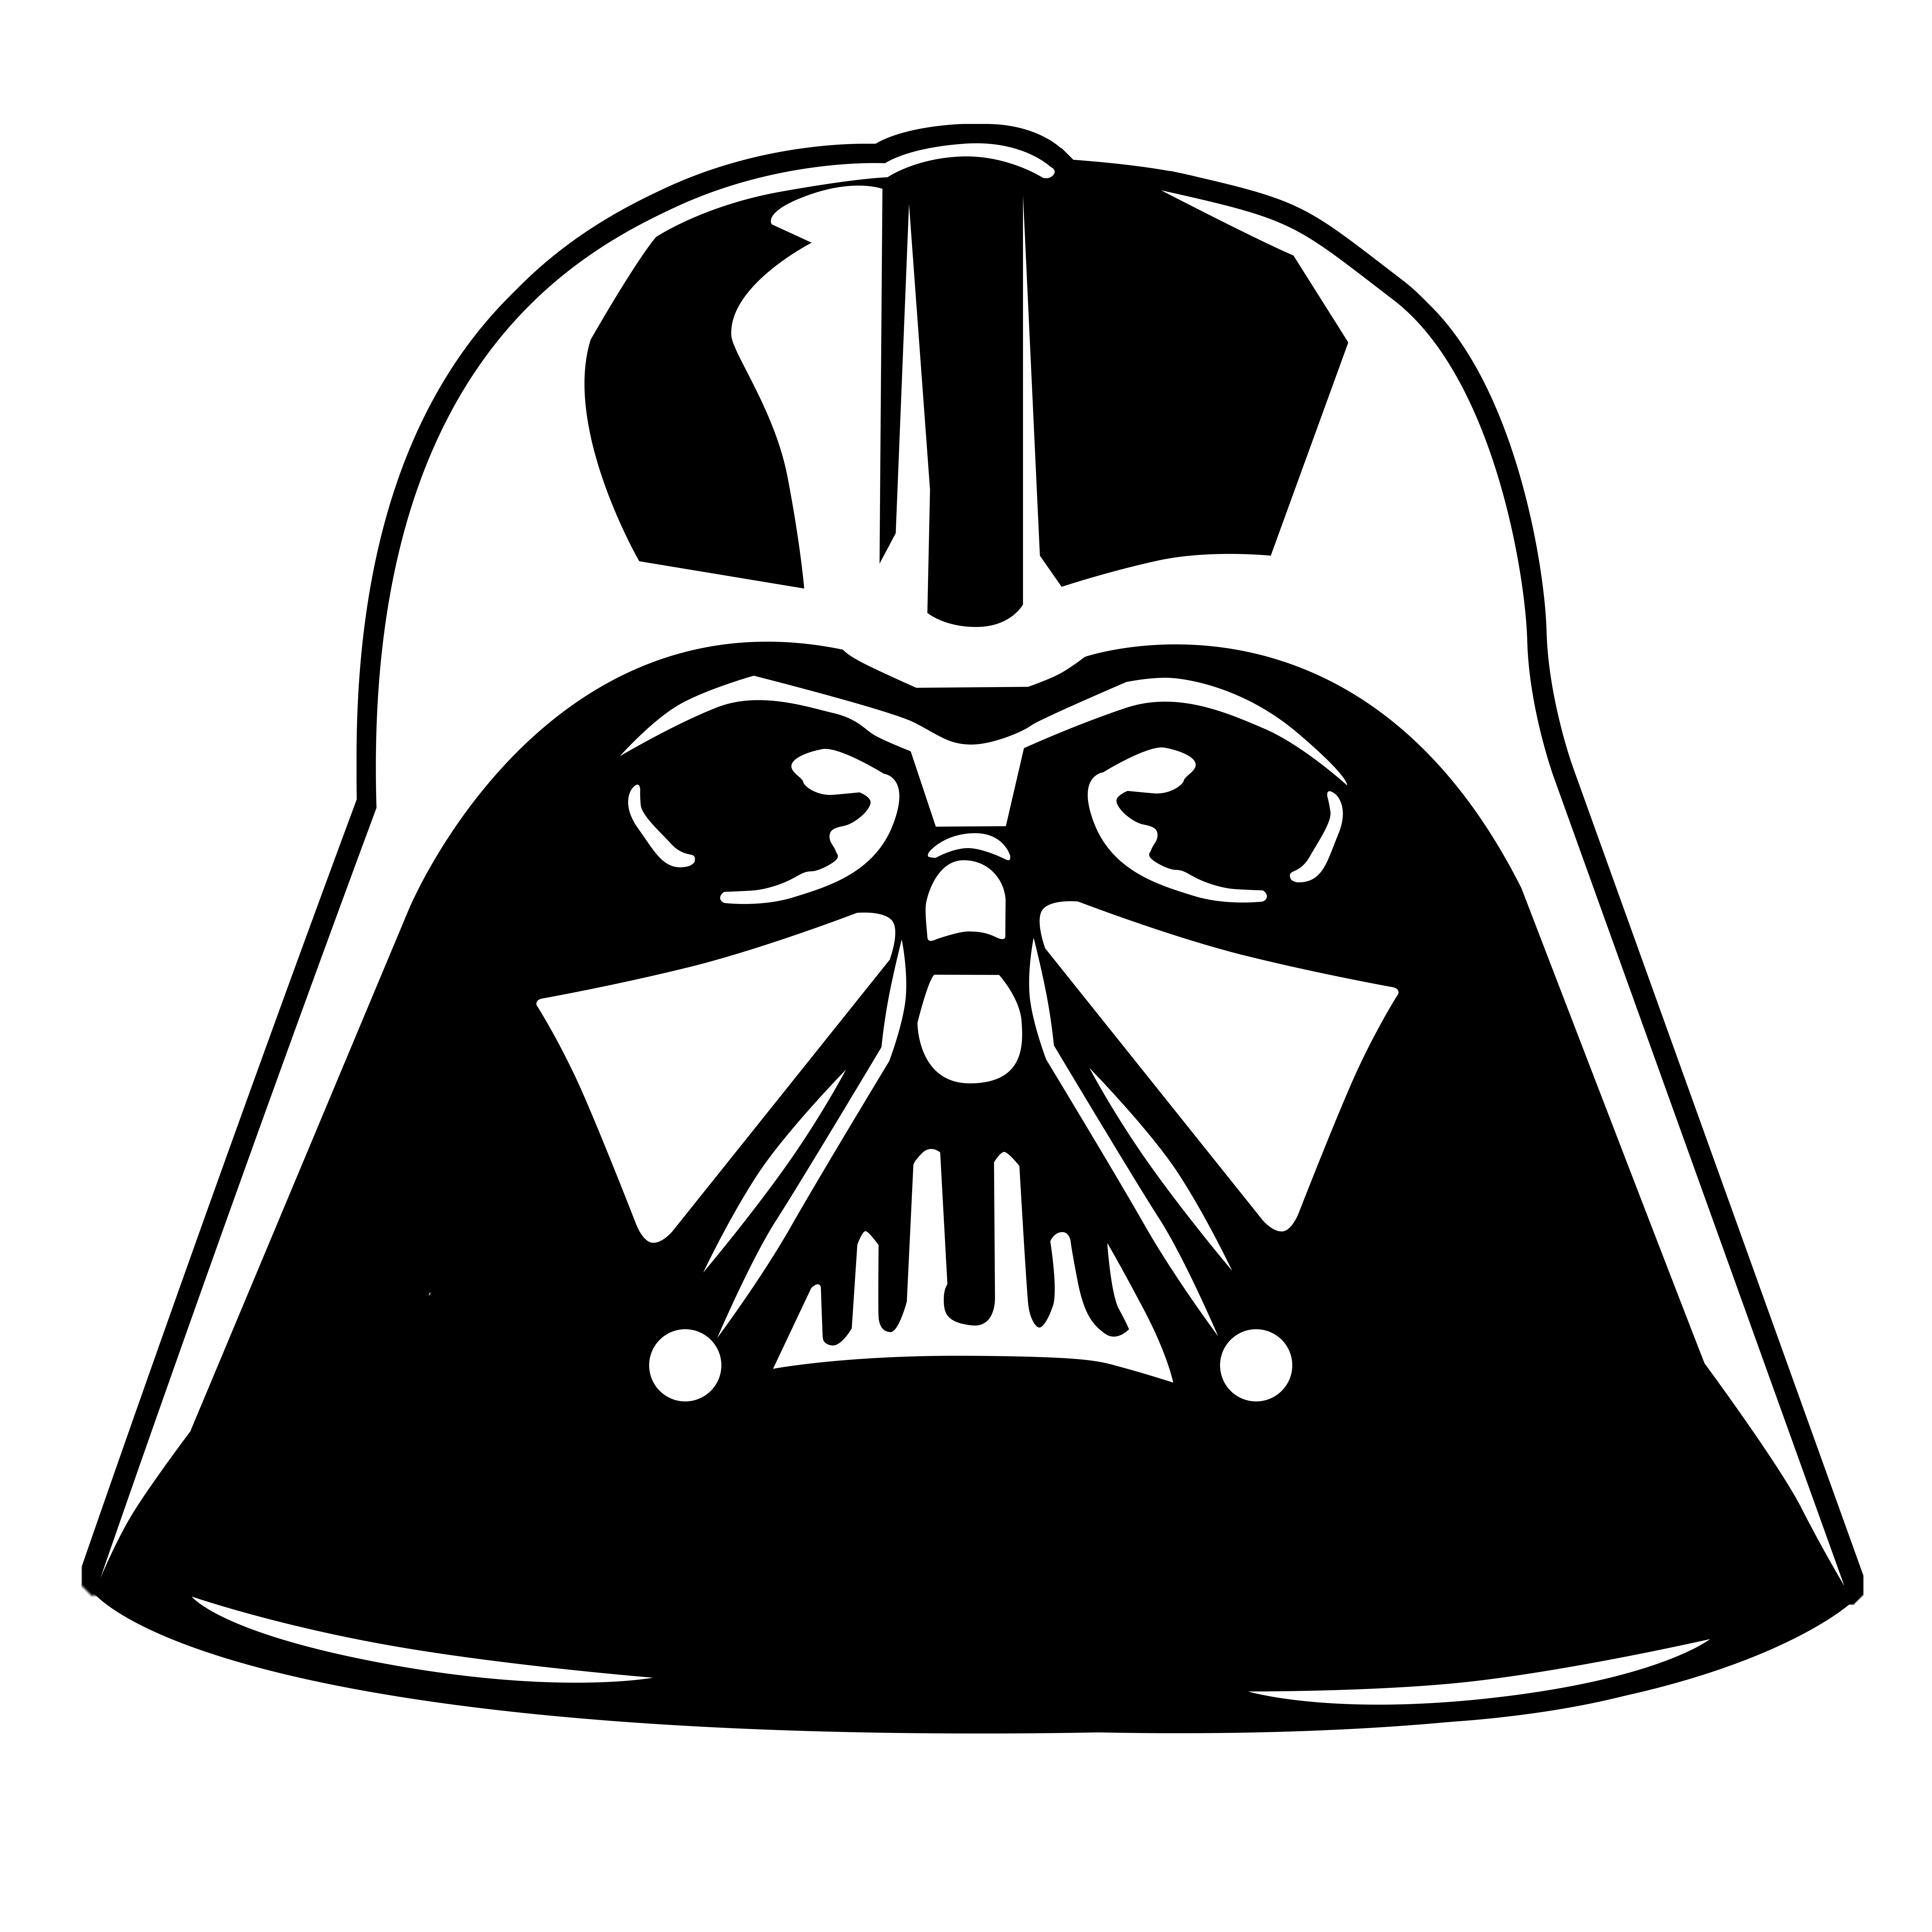 Darkside turbotech the project. Darth vader clipart dark side